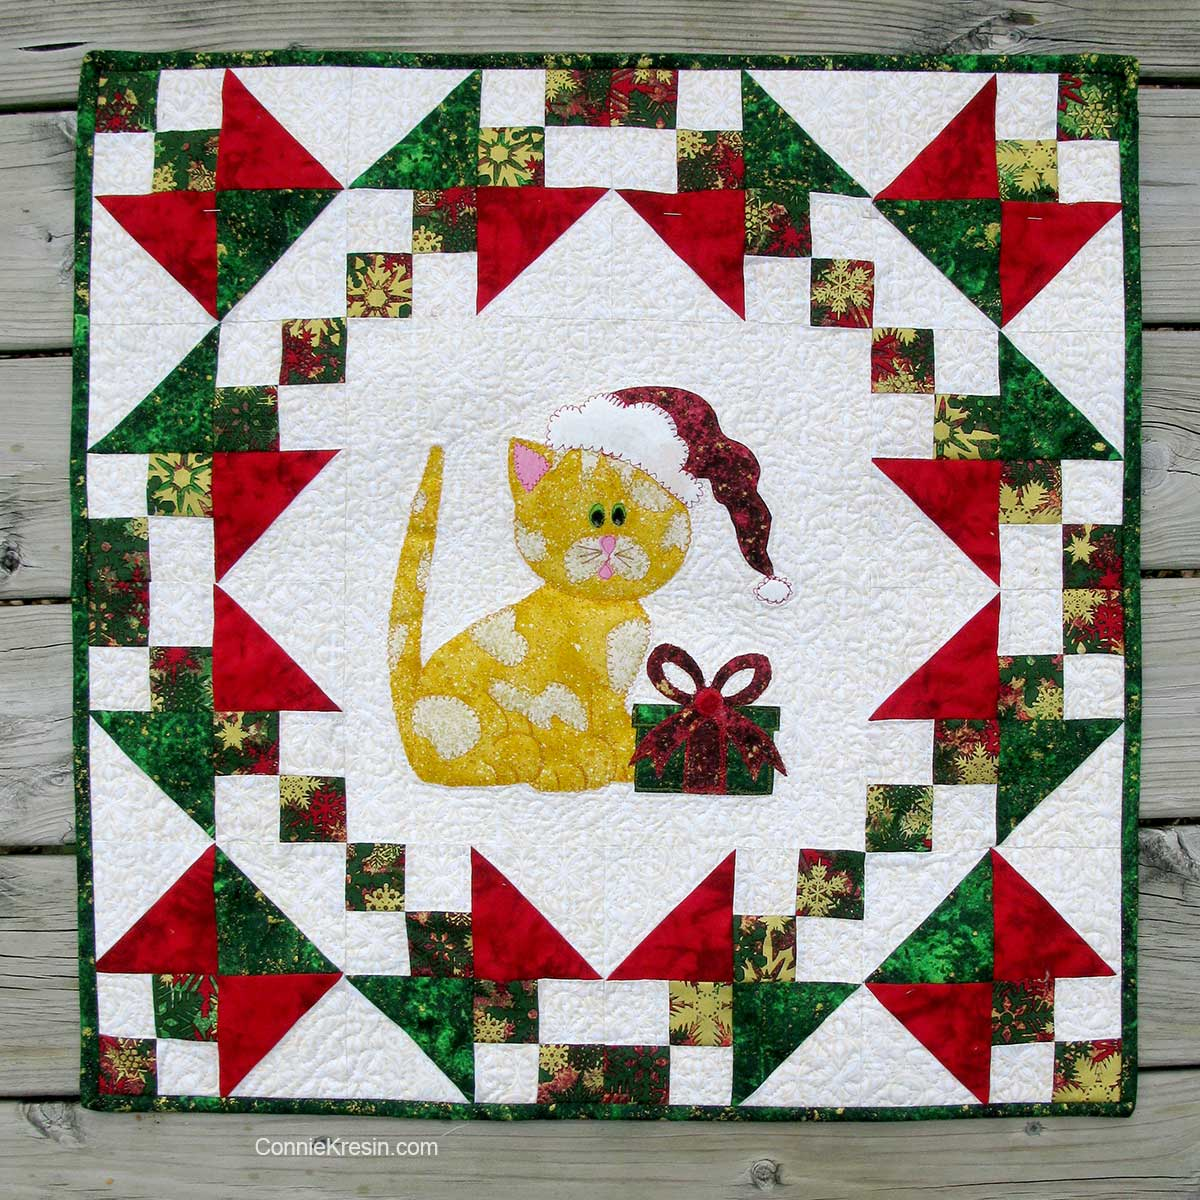 Kitty Kitty wall hanging quilt pattern